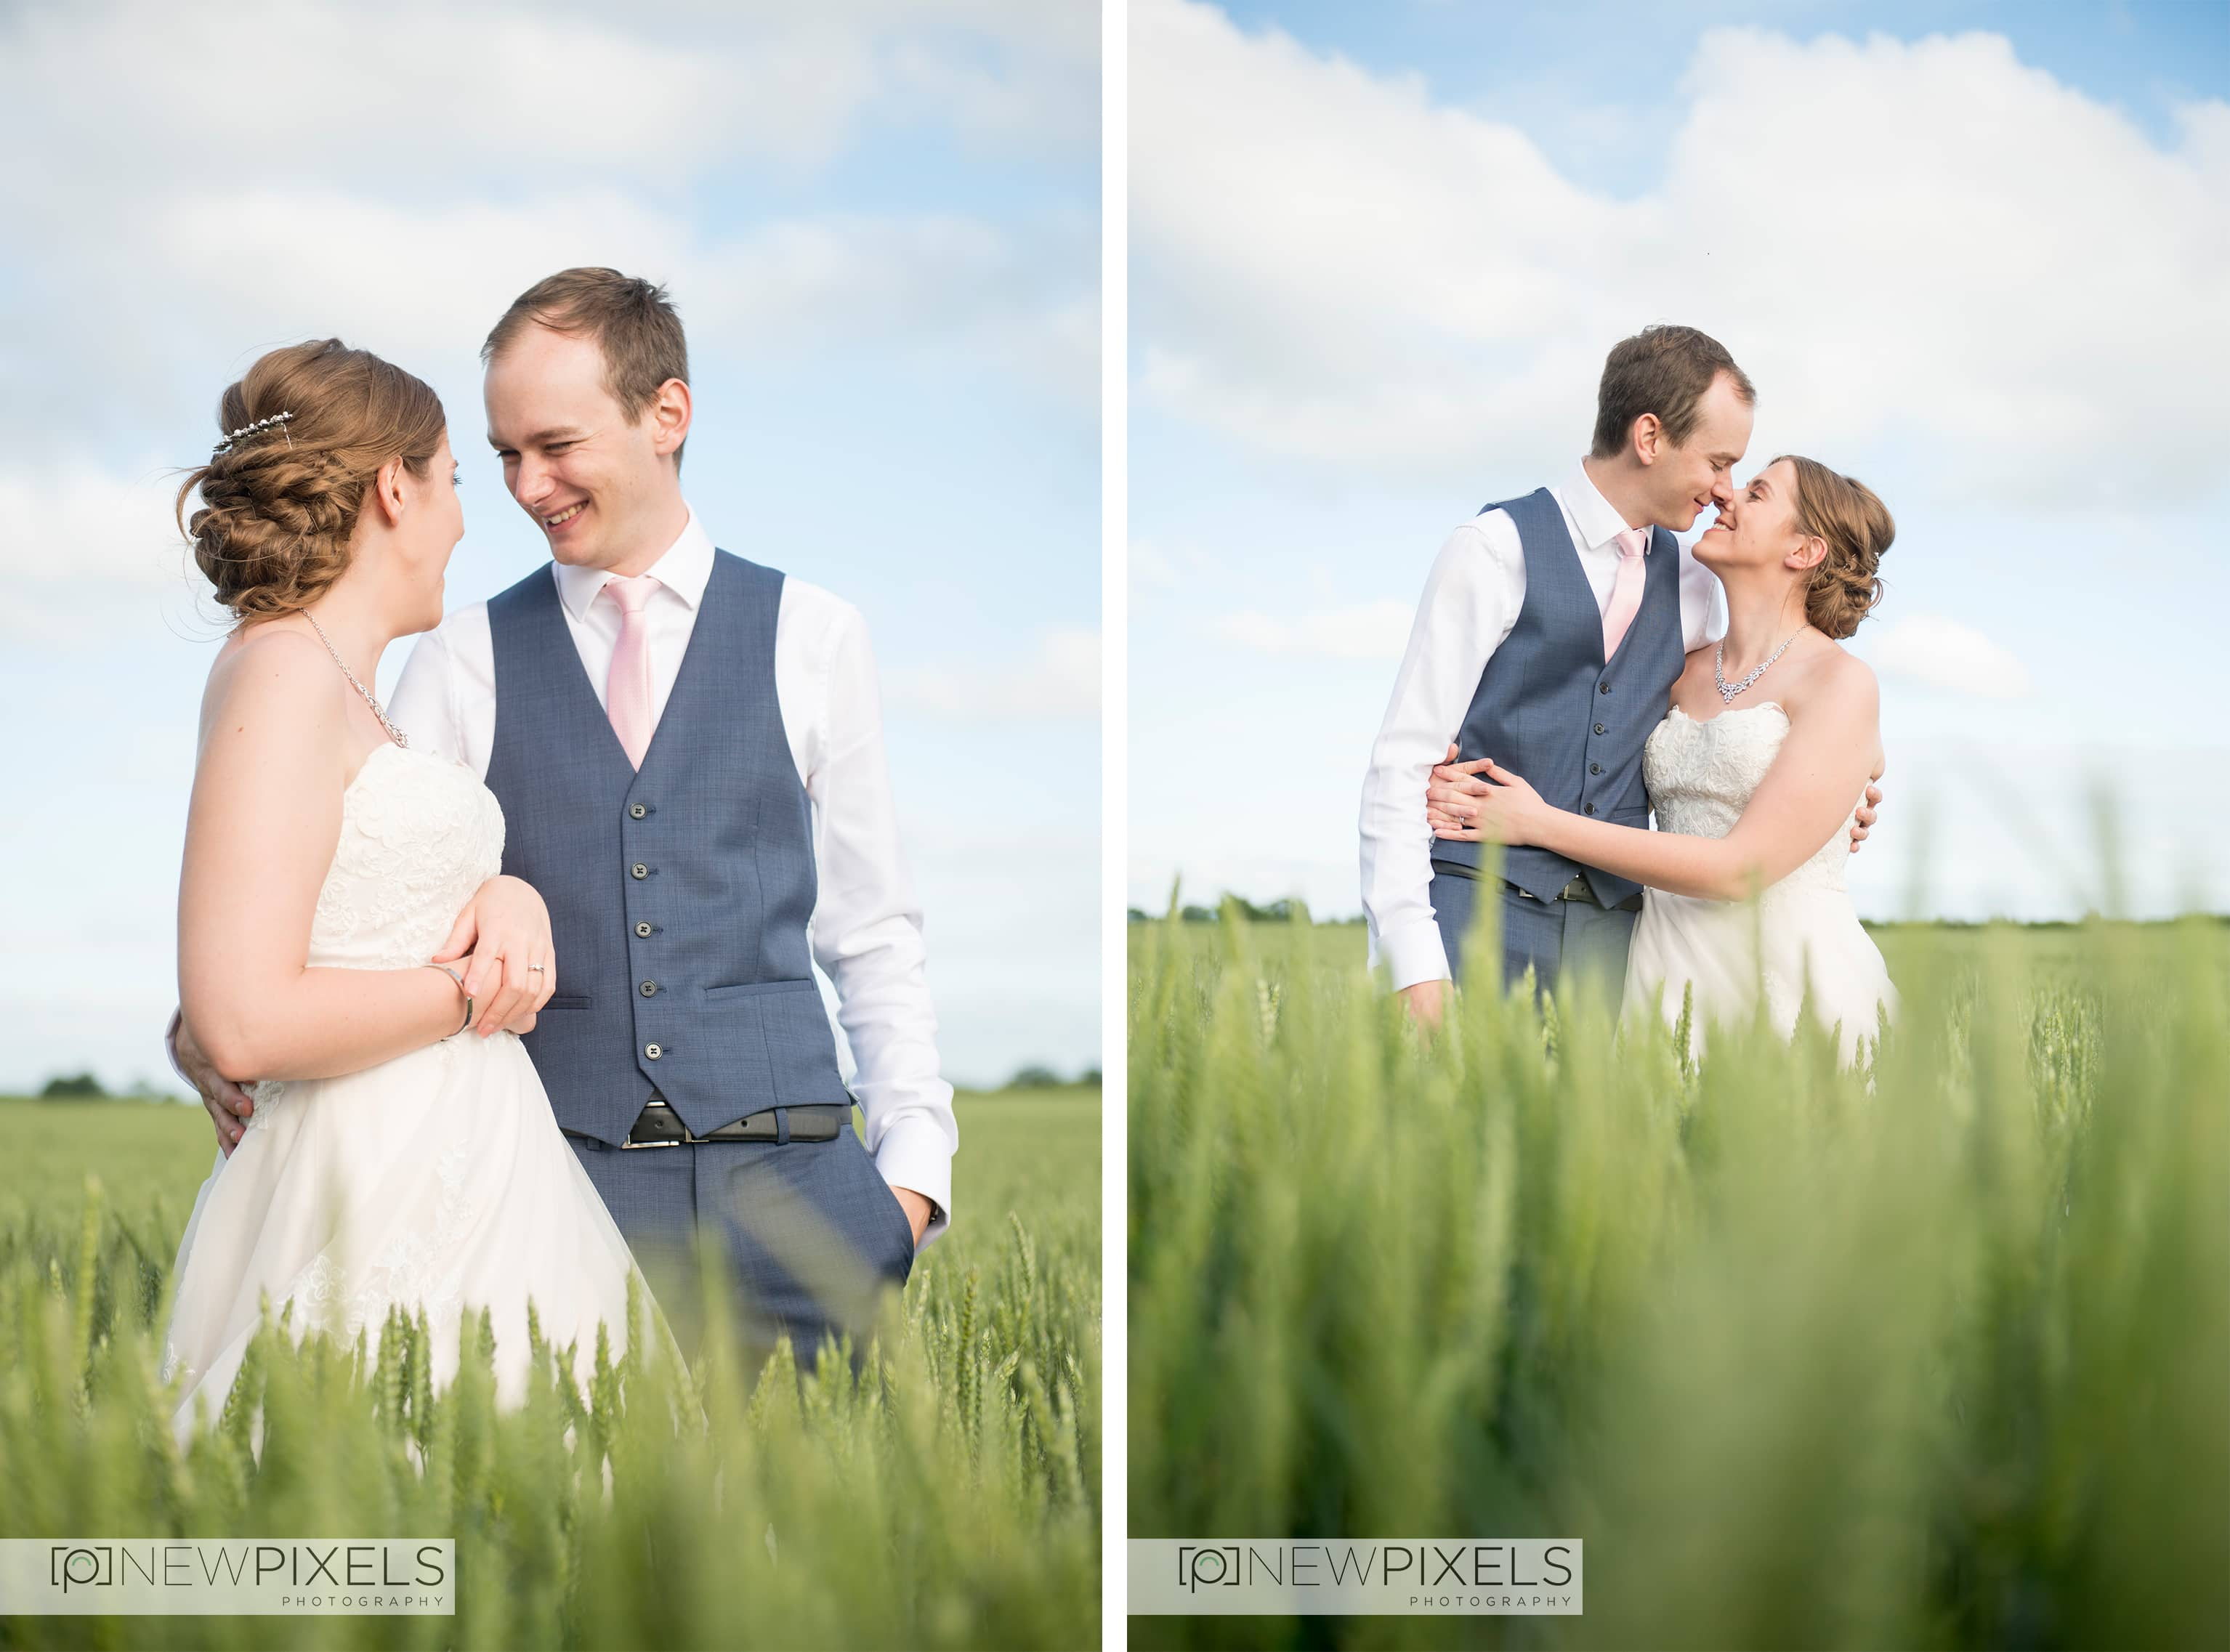 Relaxed Wedding Photography10